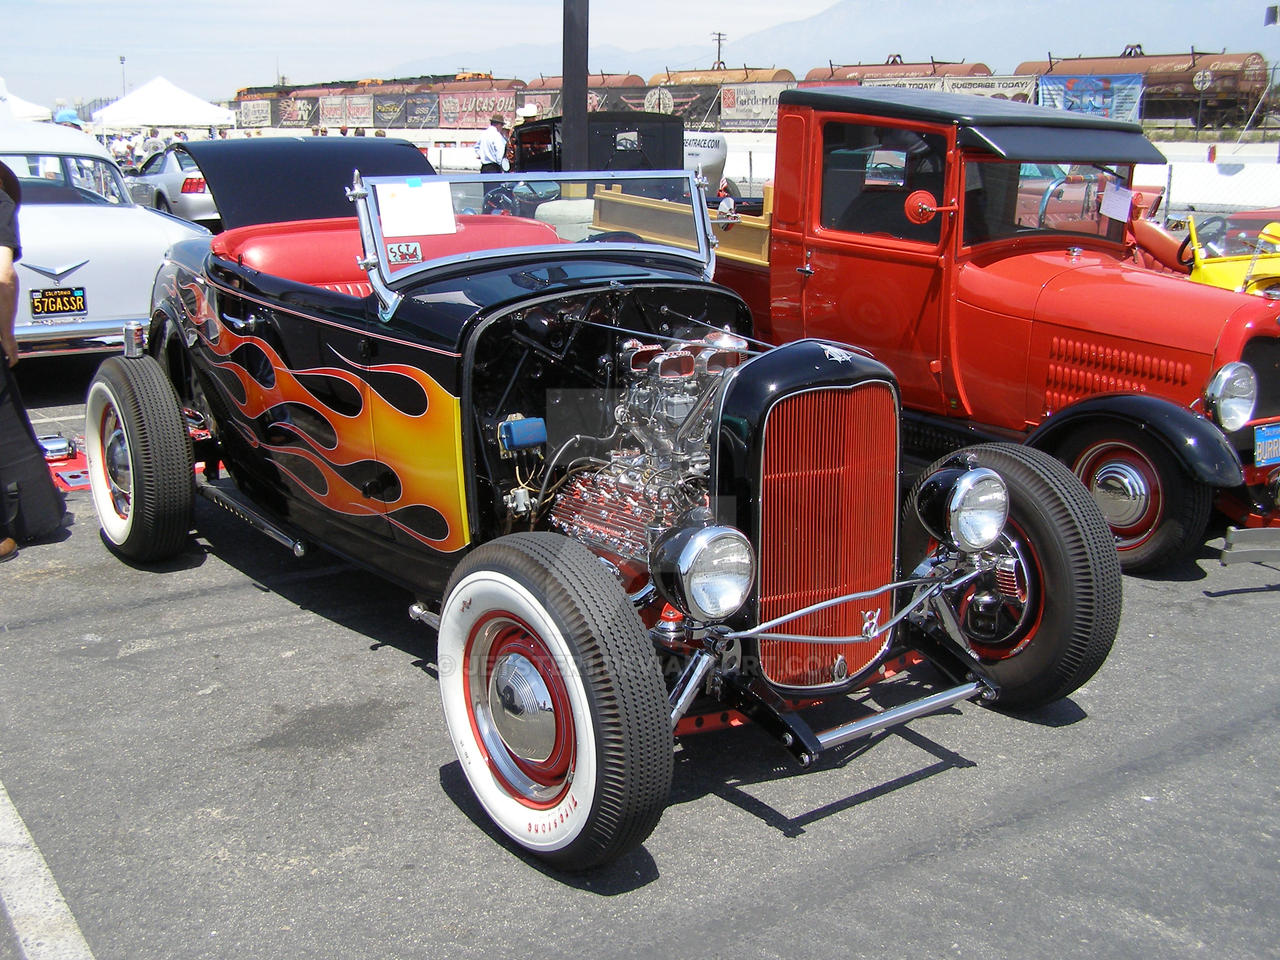 Old School Hot Rod by Jetster1 on DeviantArt